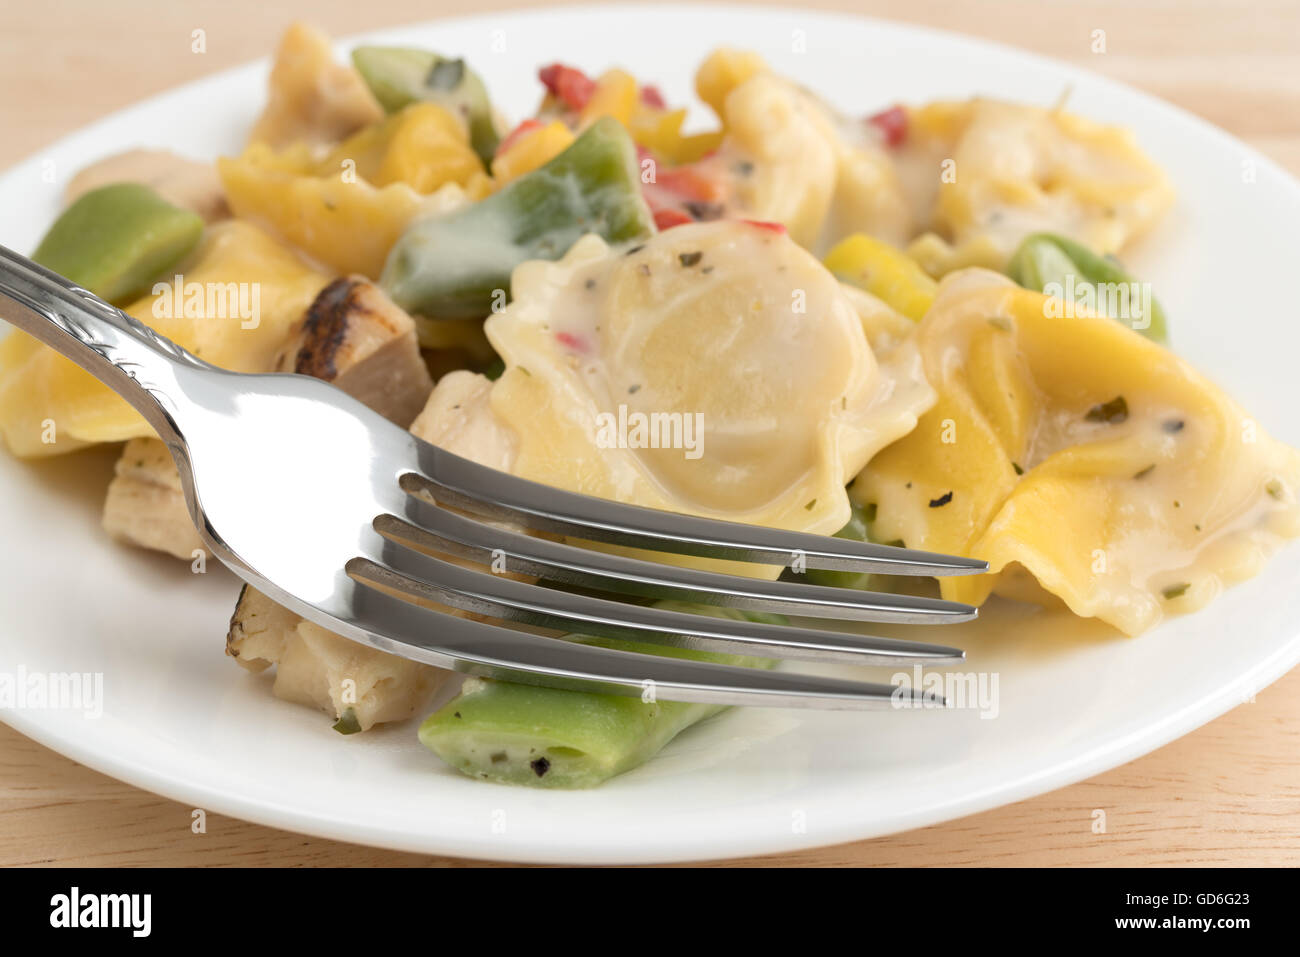 Side close view of a chicken with tortellini and vegetable TV dinner on a white plate with a fork atop a wood table. - Stock Image